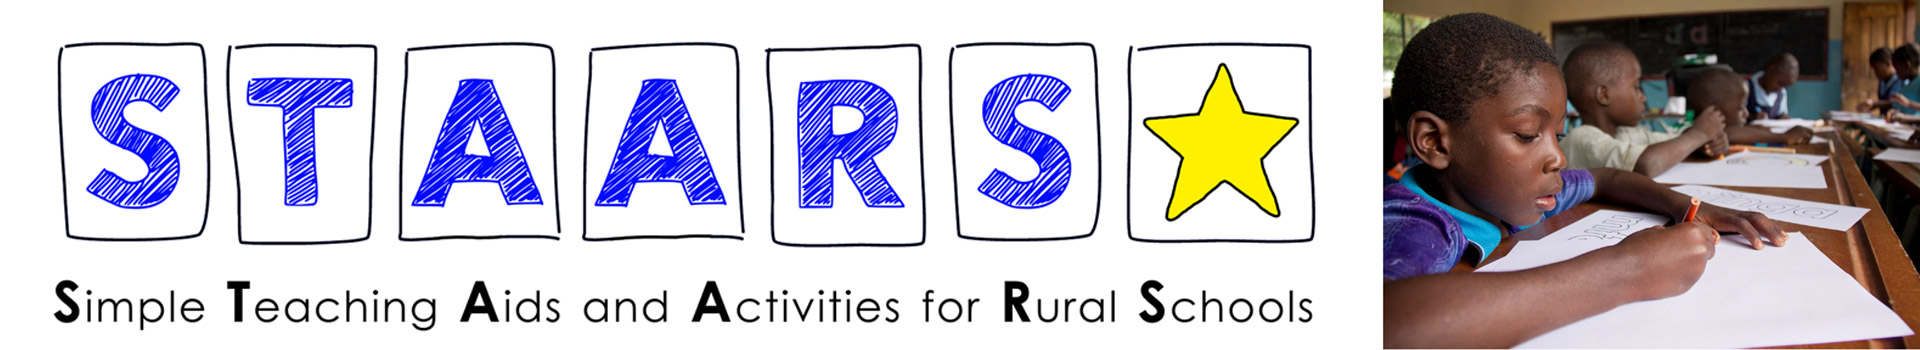 STAARS - Simple Teaching Aids and Activities for Rural Schools